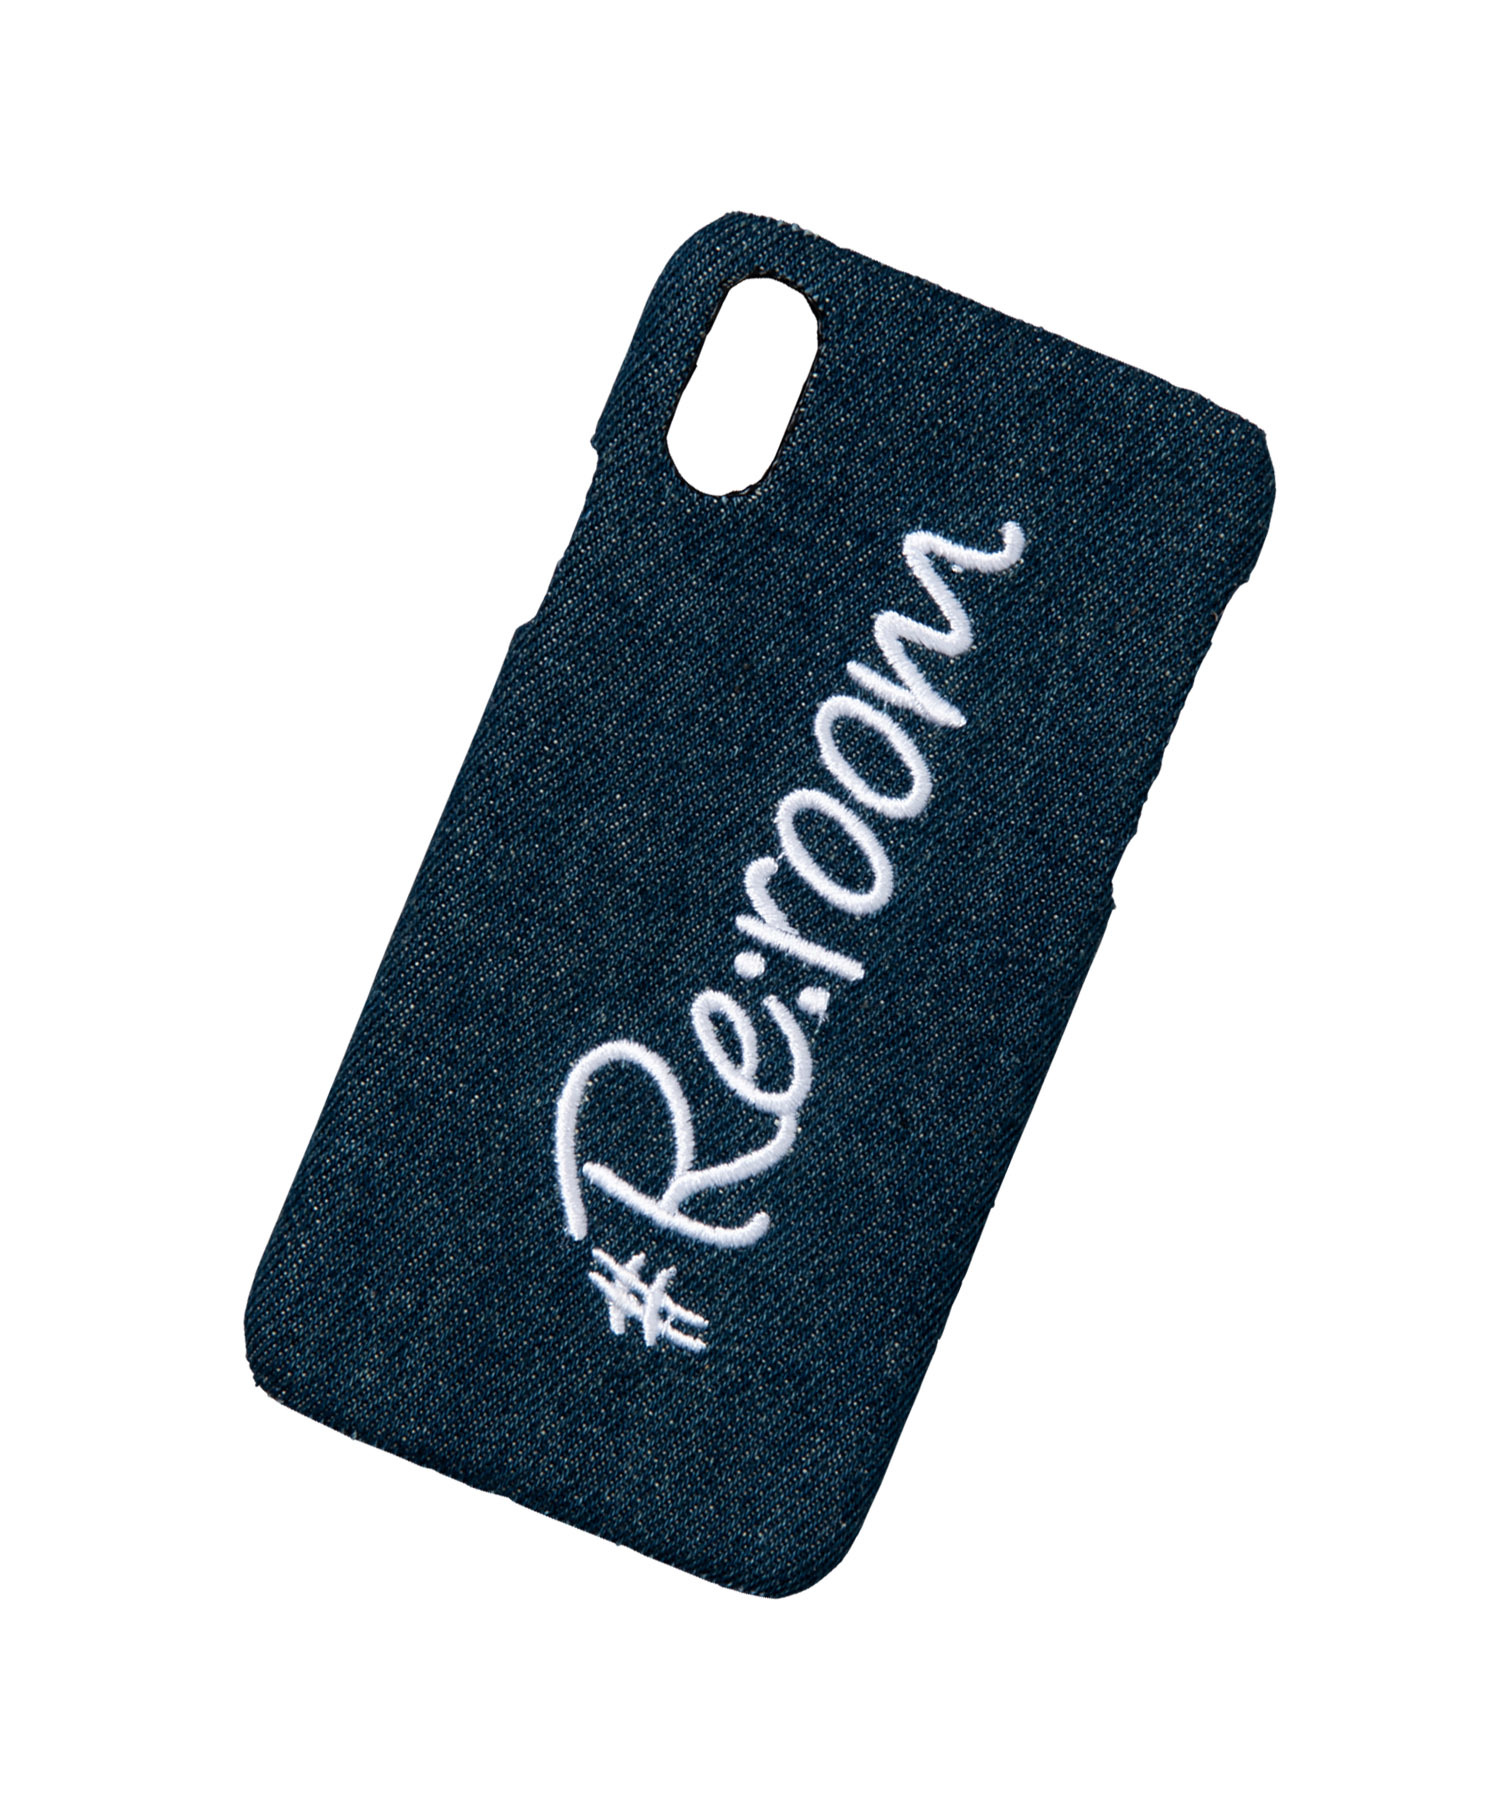 EMBROIDERY LOGO iPhoneXS/X CASE[REG092]